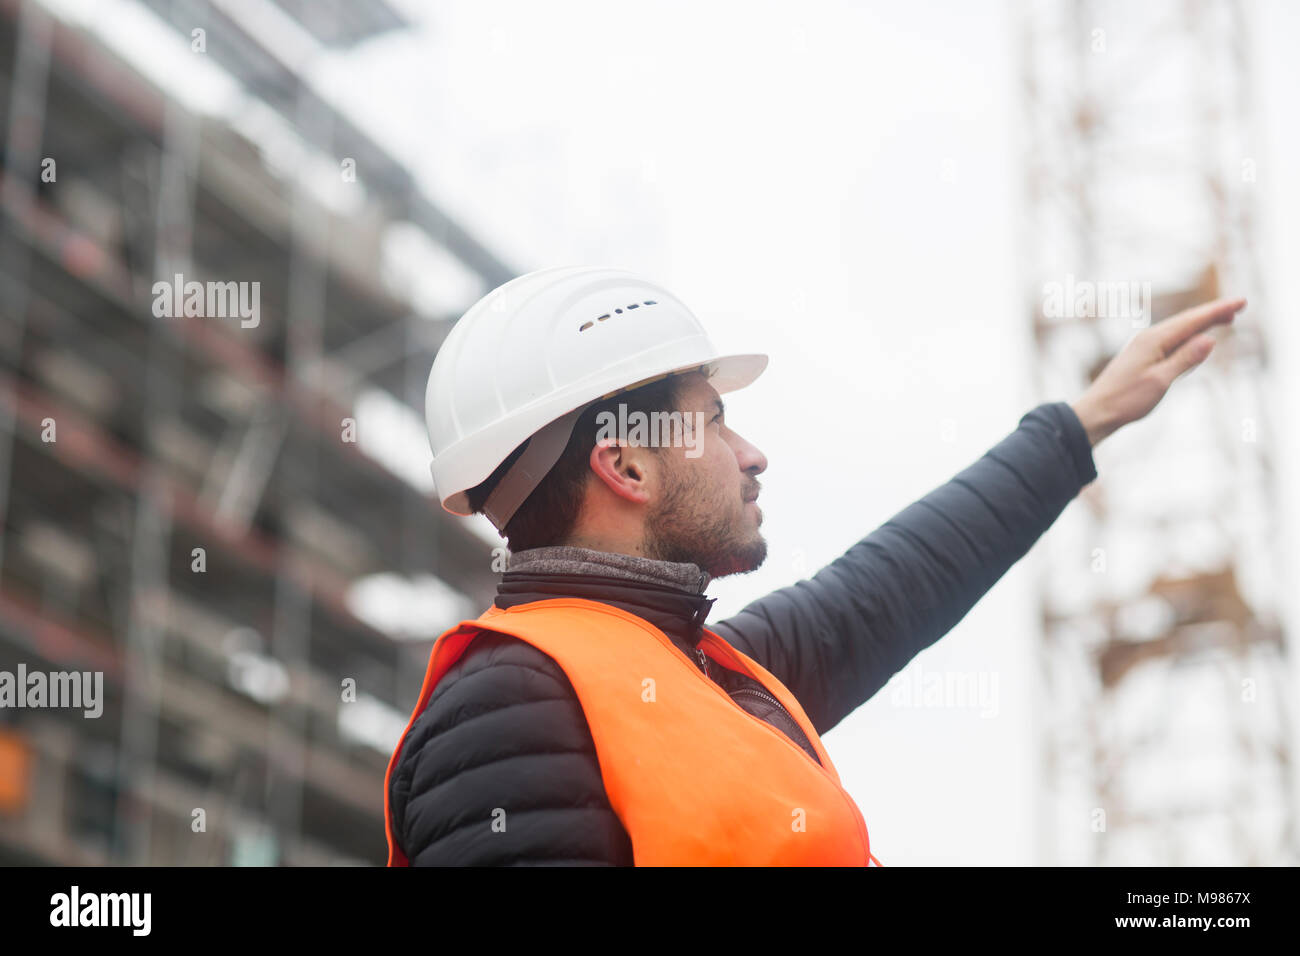 Man with wearing safety vest and hard hat at construction site - Stock Image